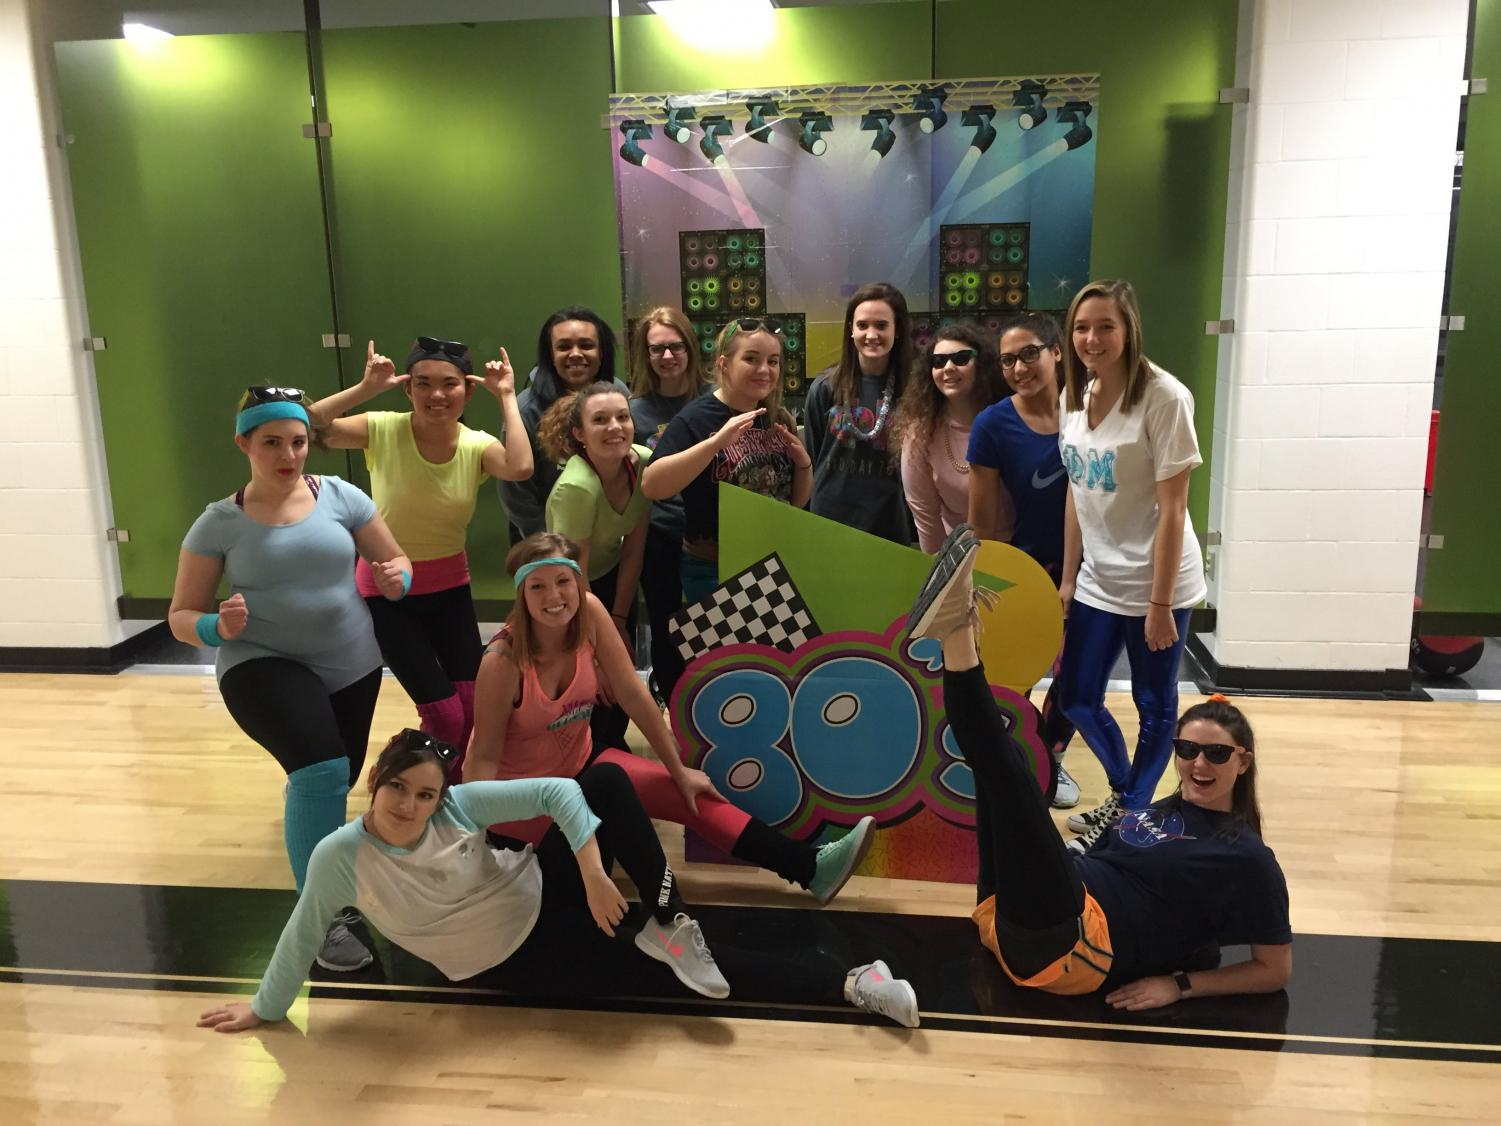 Neon-clad students waxed (and flexed) nostalgic at an 80's Aerobics session.